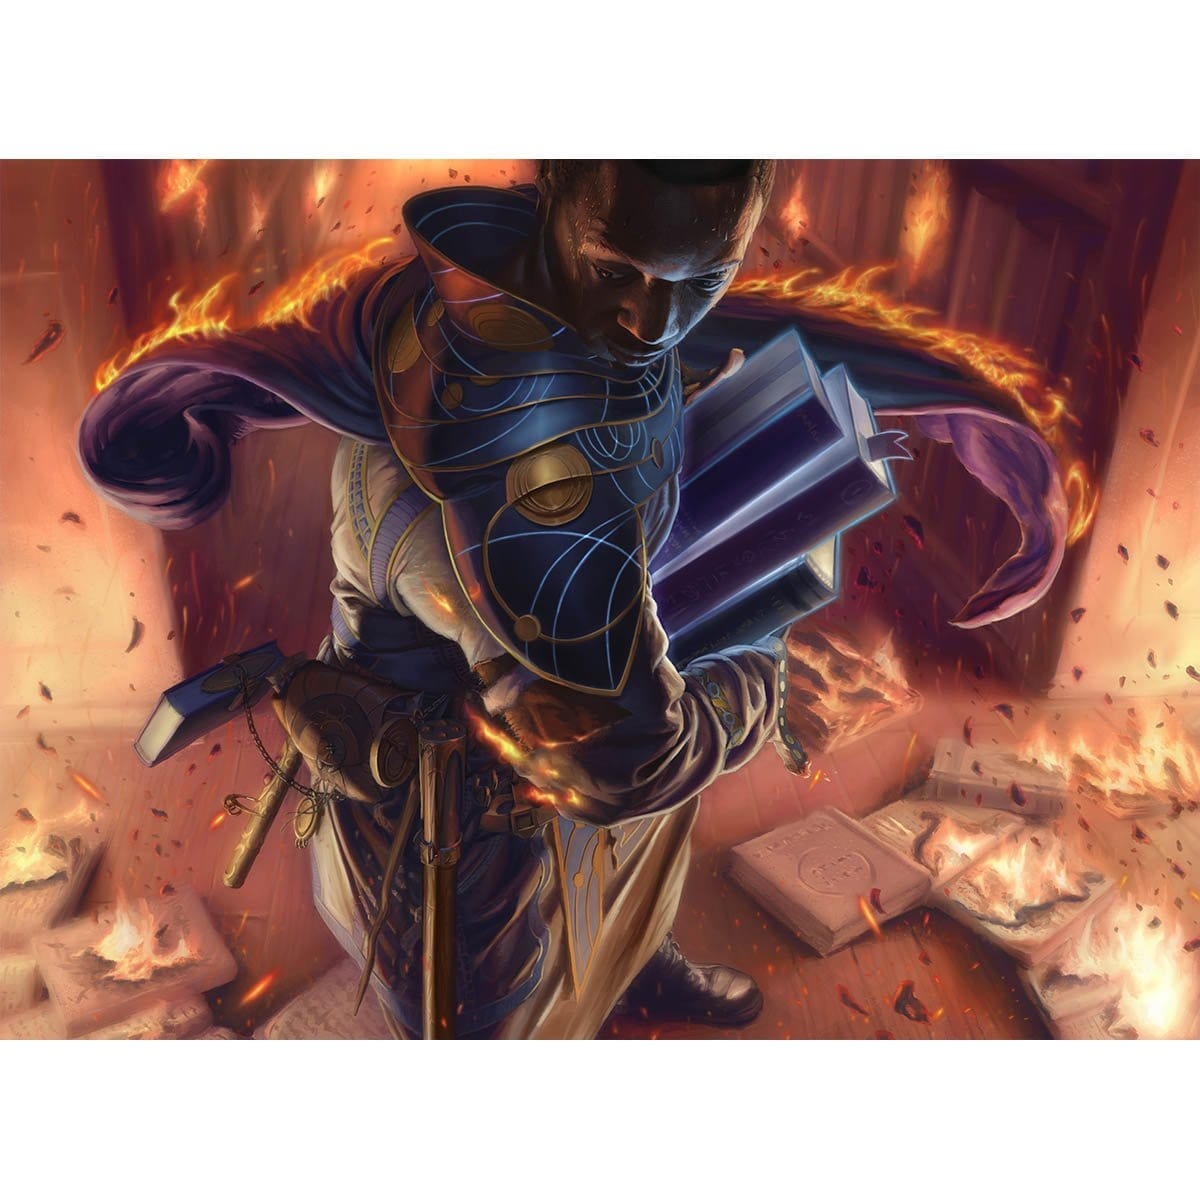 Rescue Print - Print - Original Magic Art - Accessories for Magic the Gathering and other card games